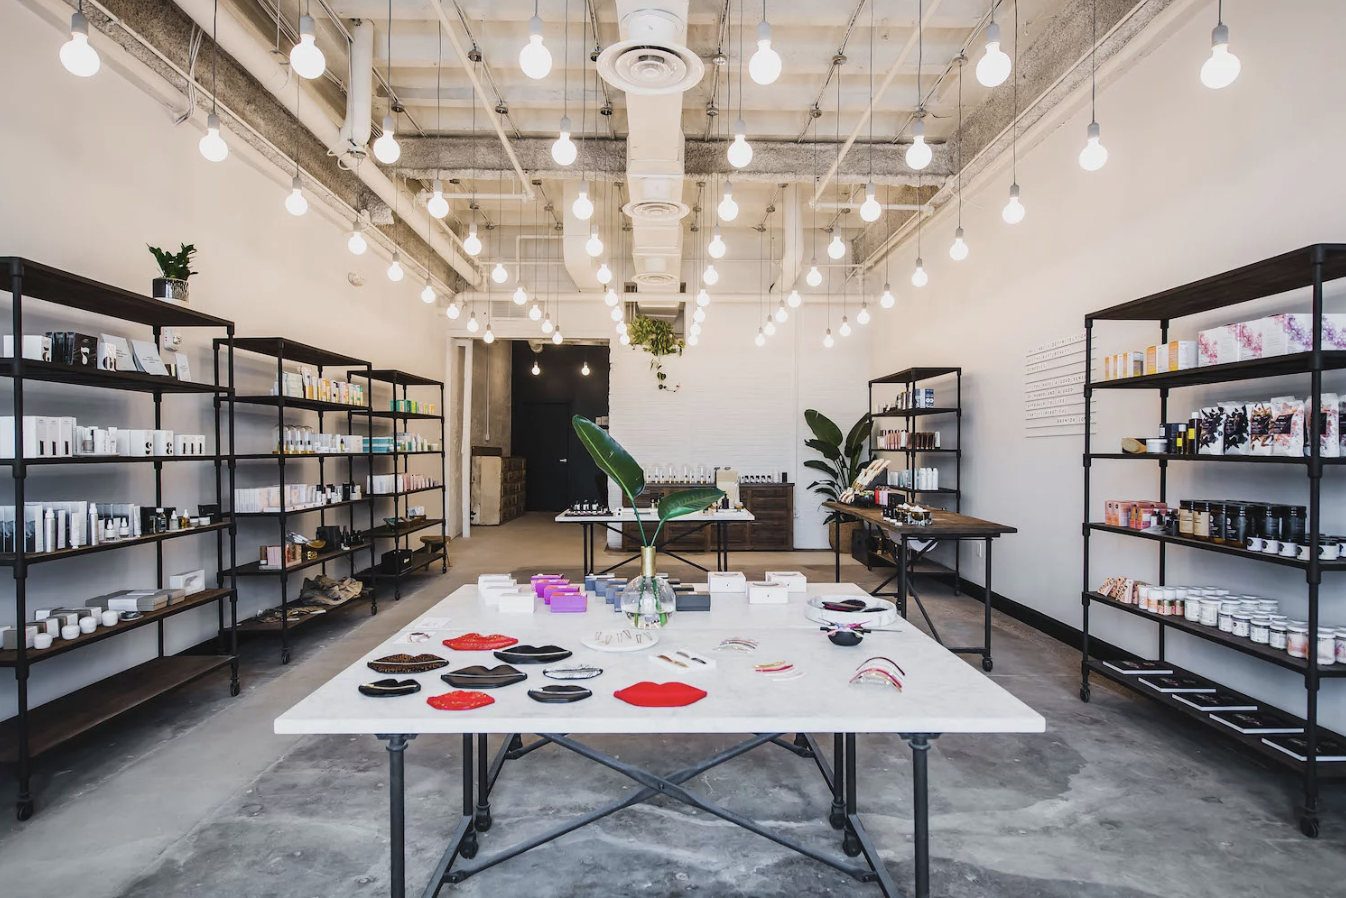 Veer & Wander store photos  by the Washingtonian